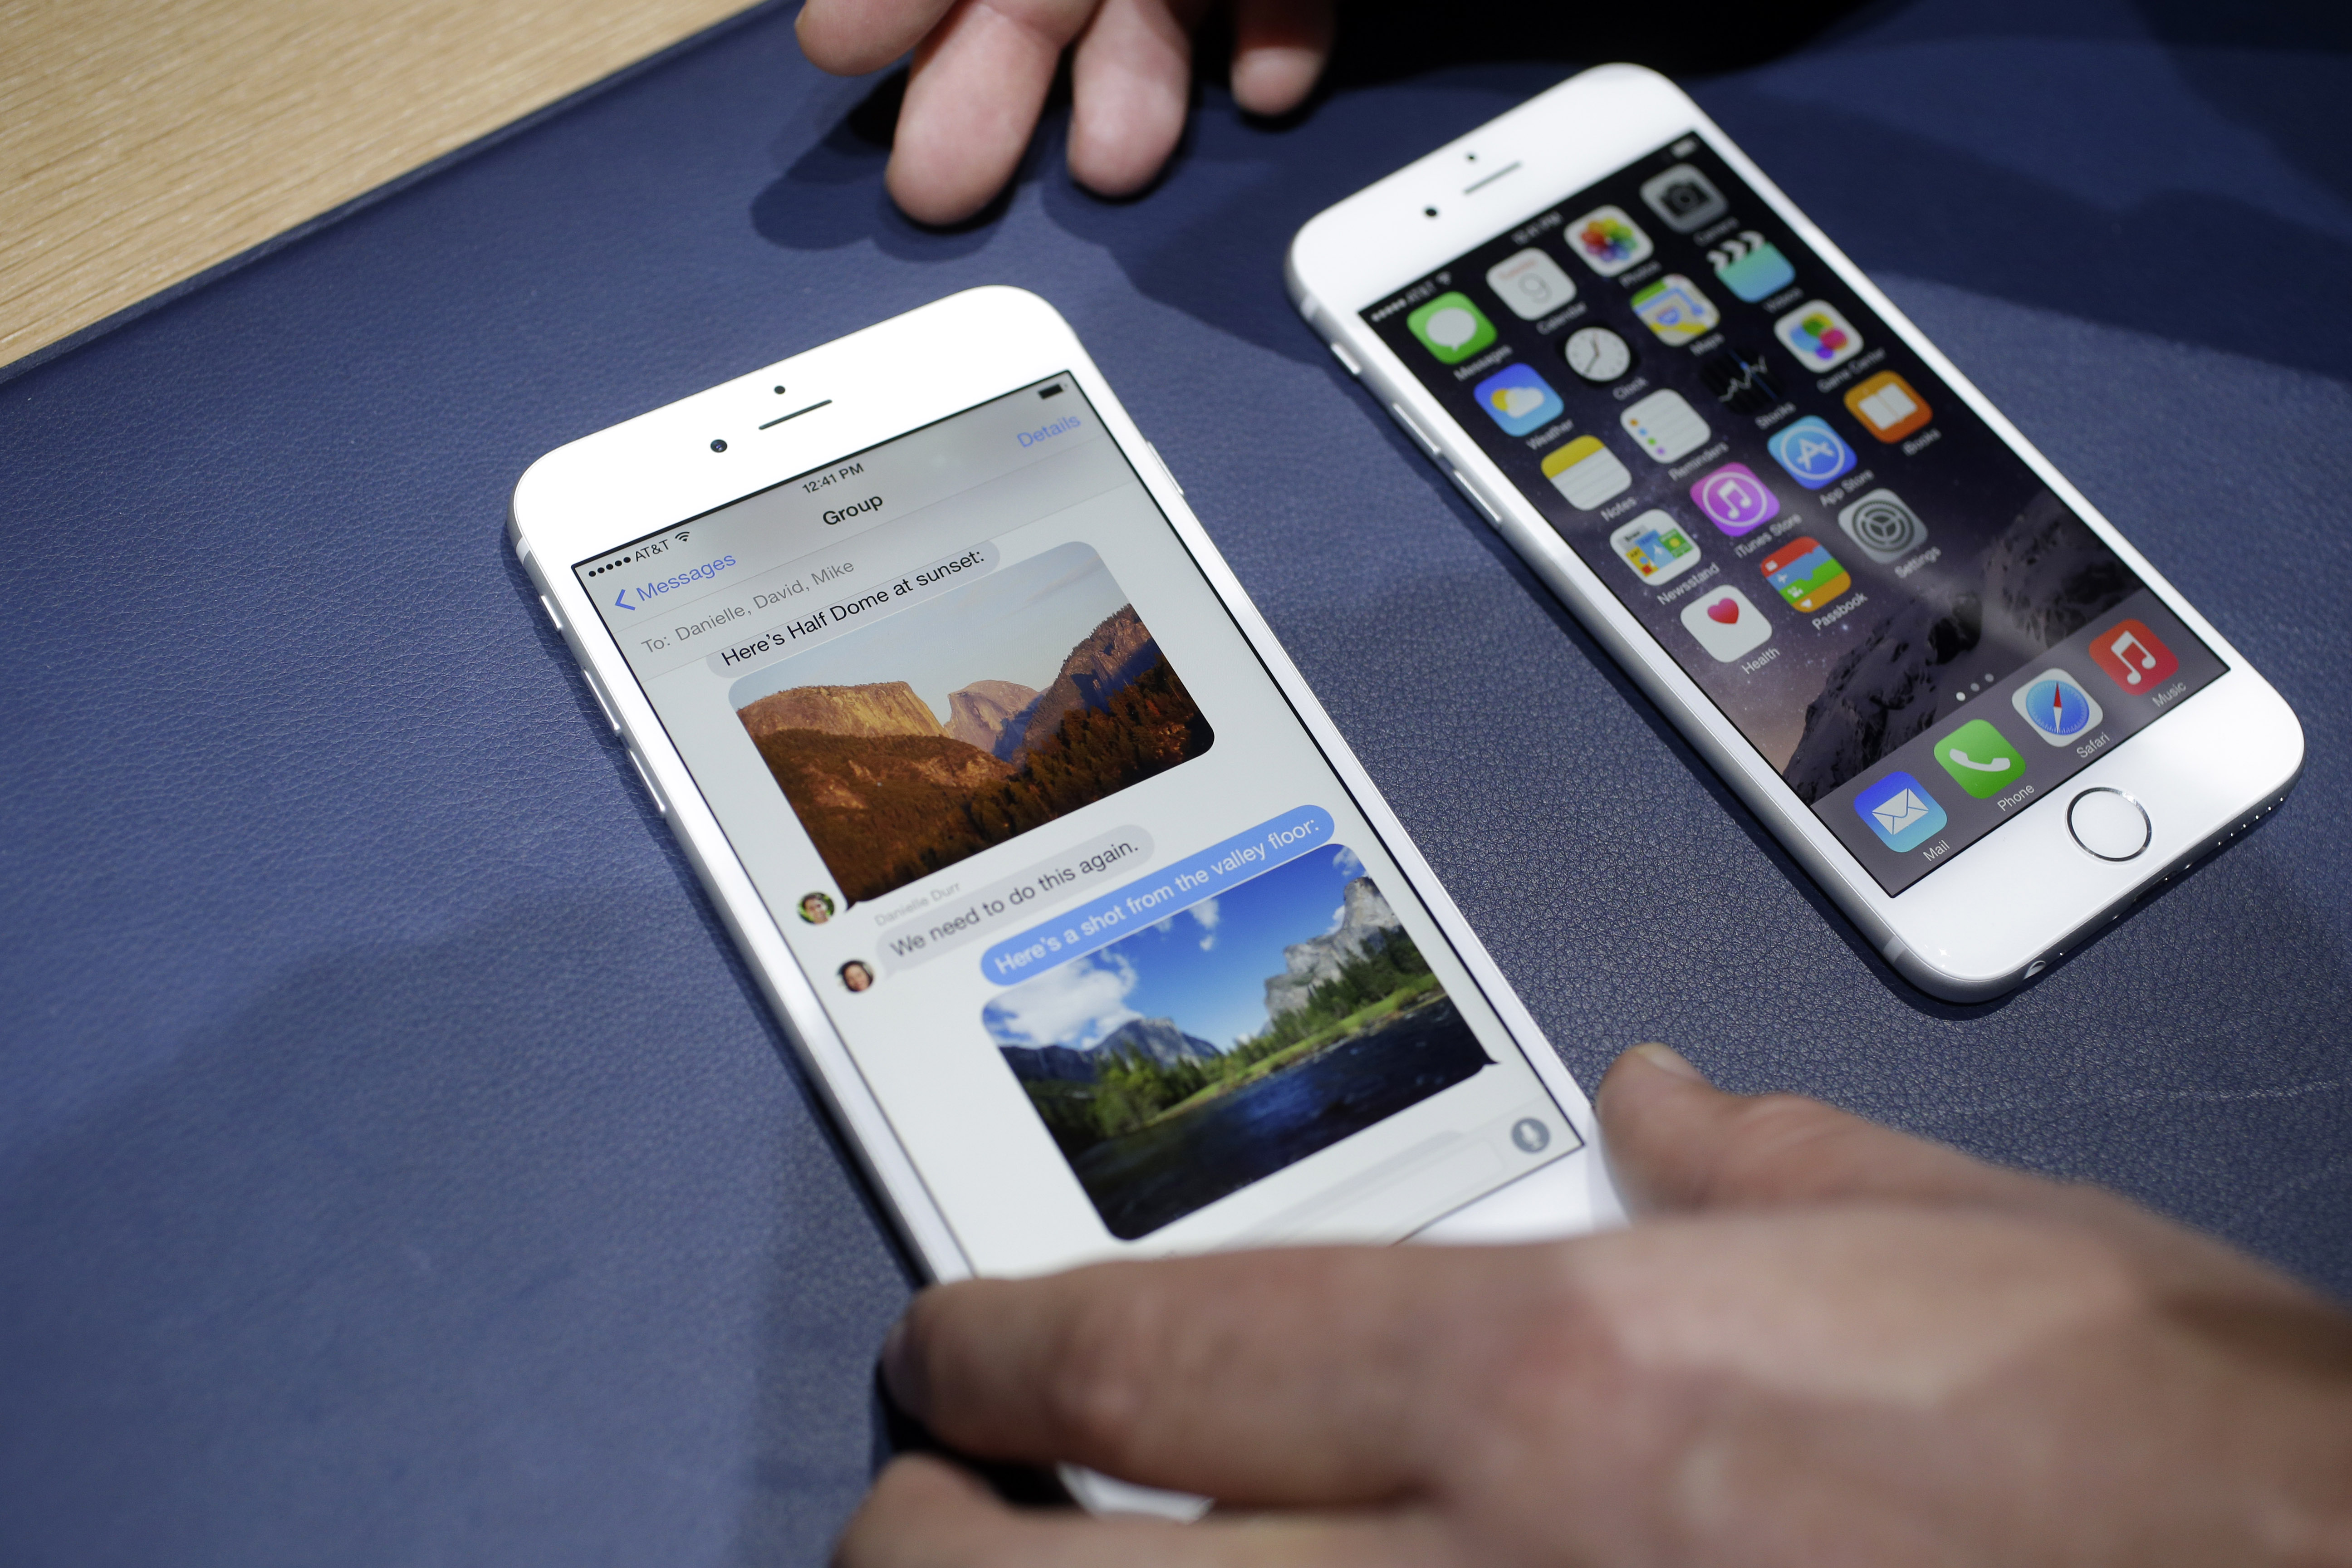 The iPhone 6 plus, left, and iPhone 6 are displayed, in Cupertino, Calif.